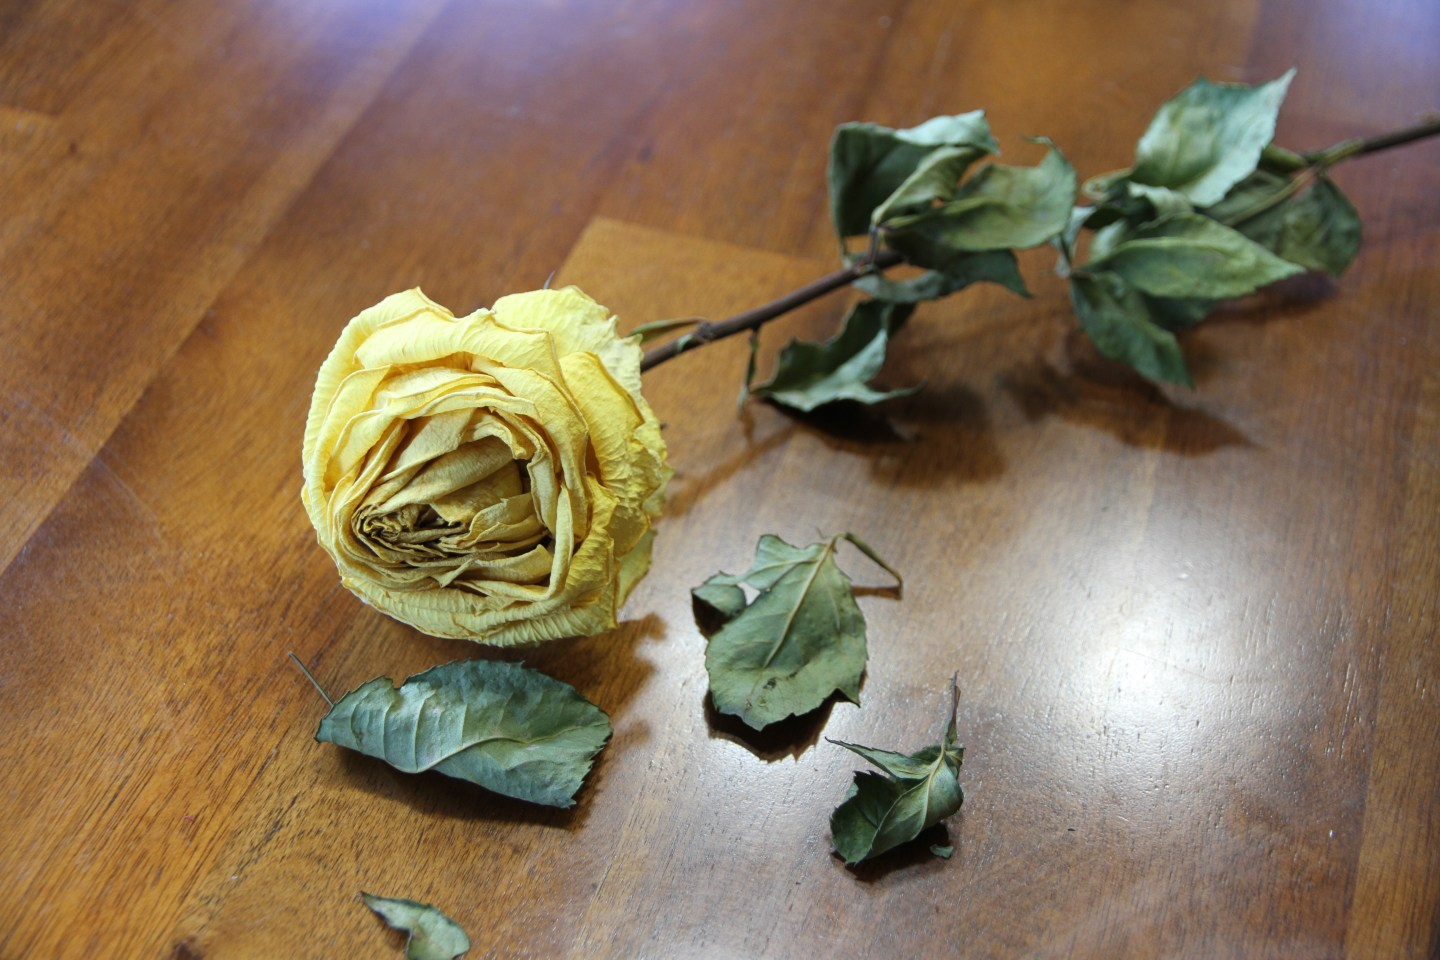 yellow rose, dried, and dried up leaves